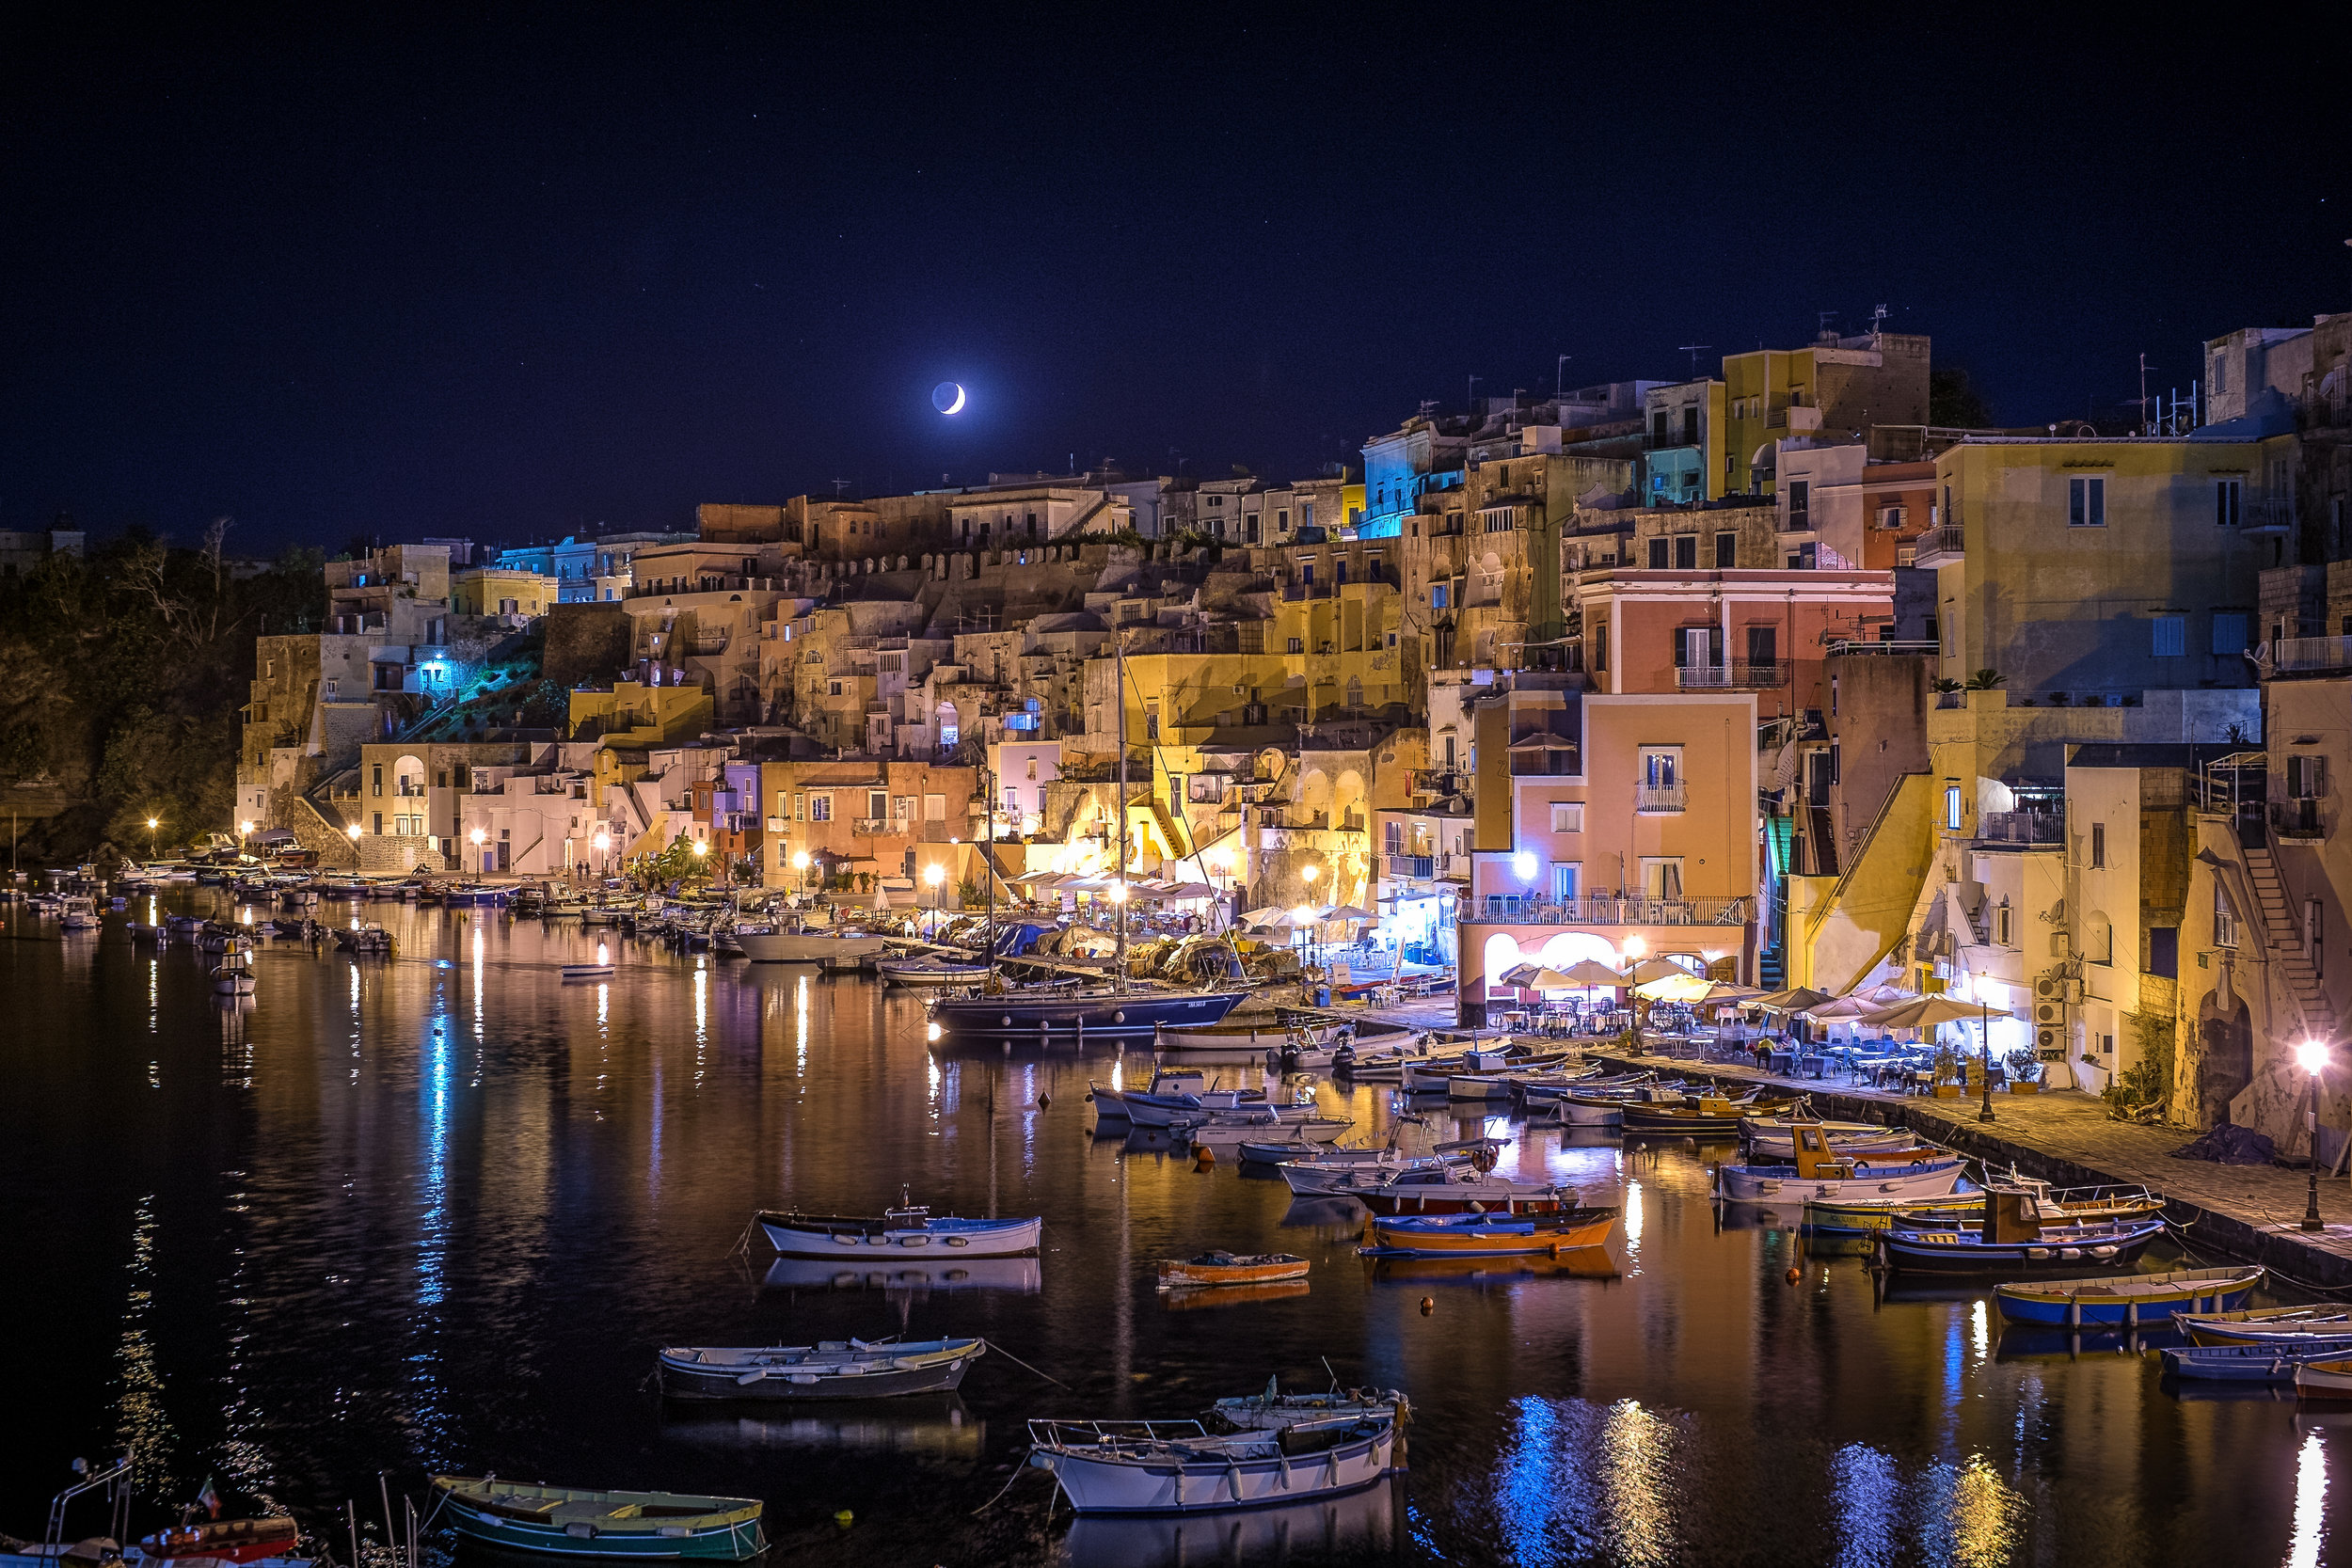 Moonlight over Procida